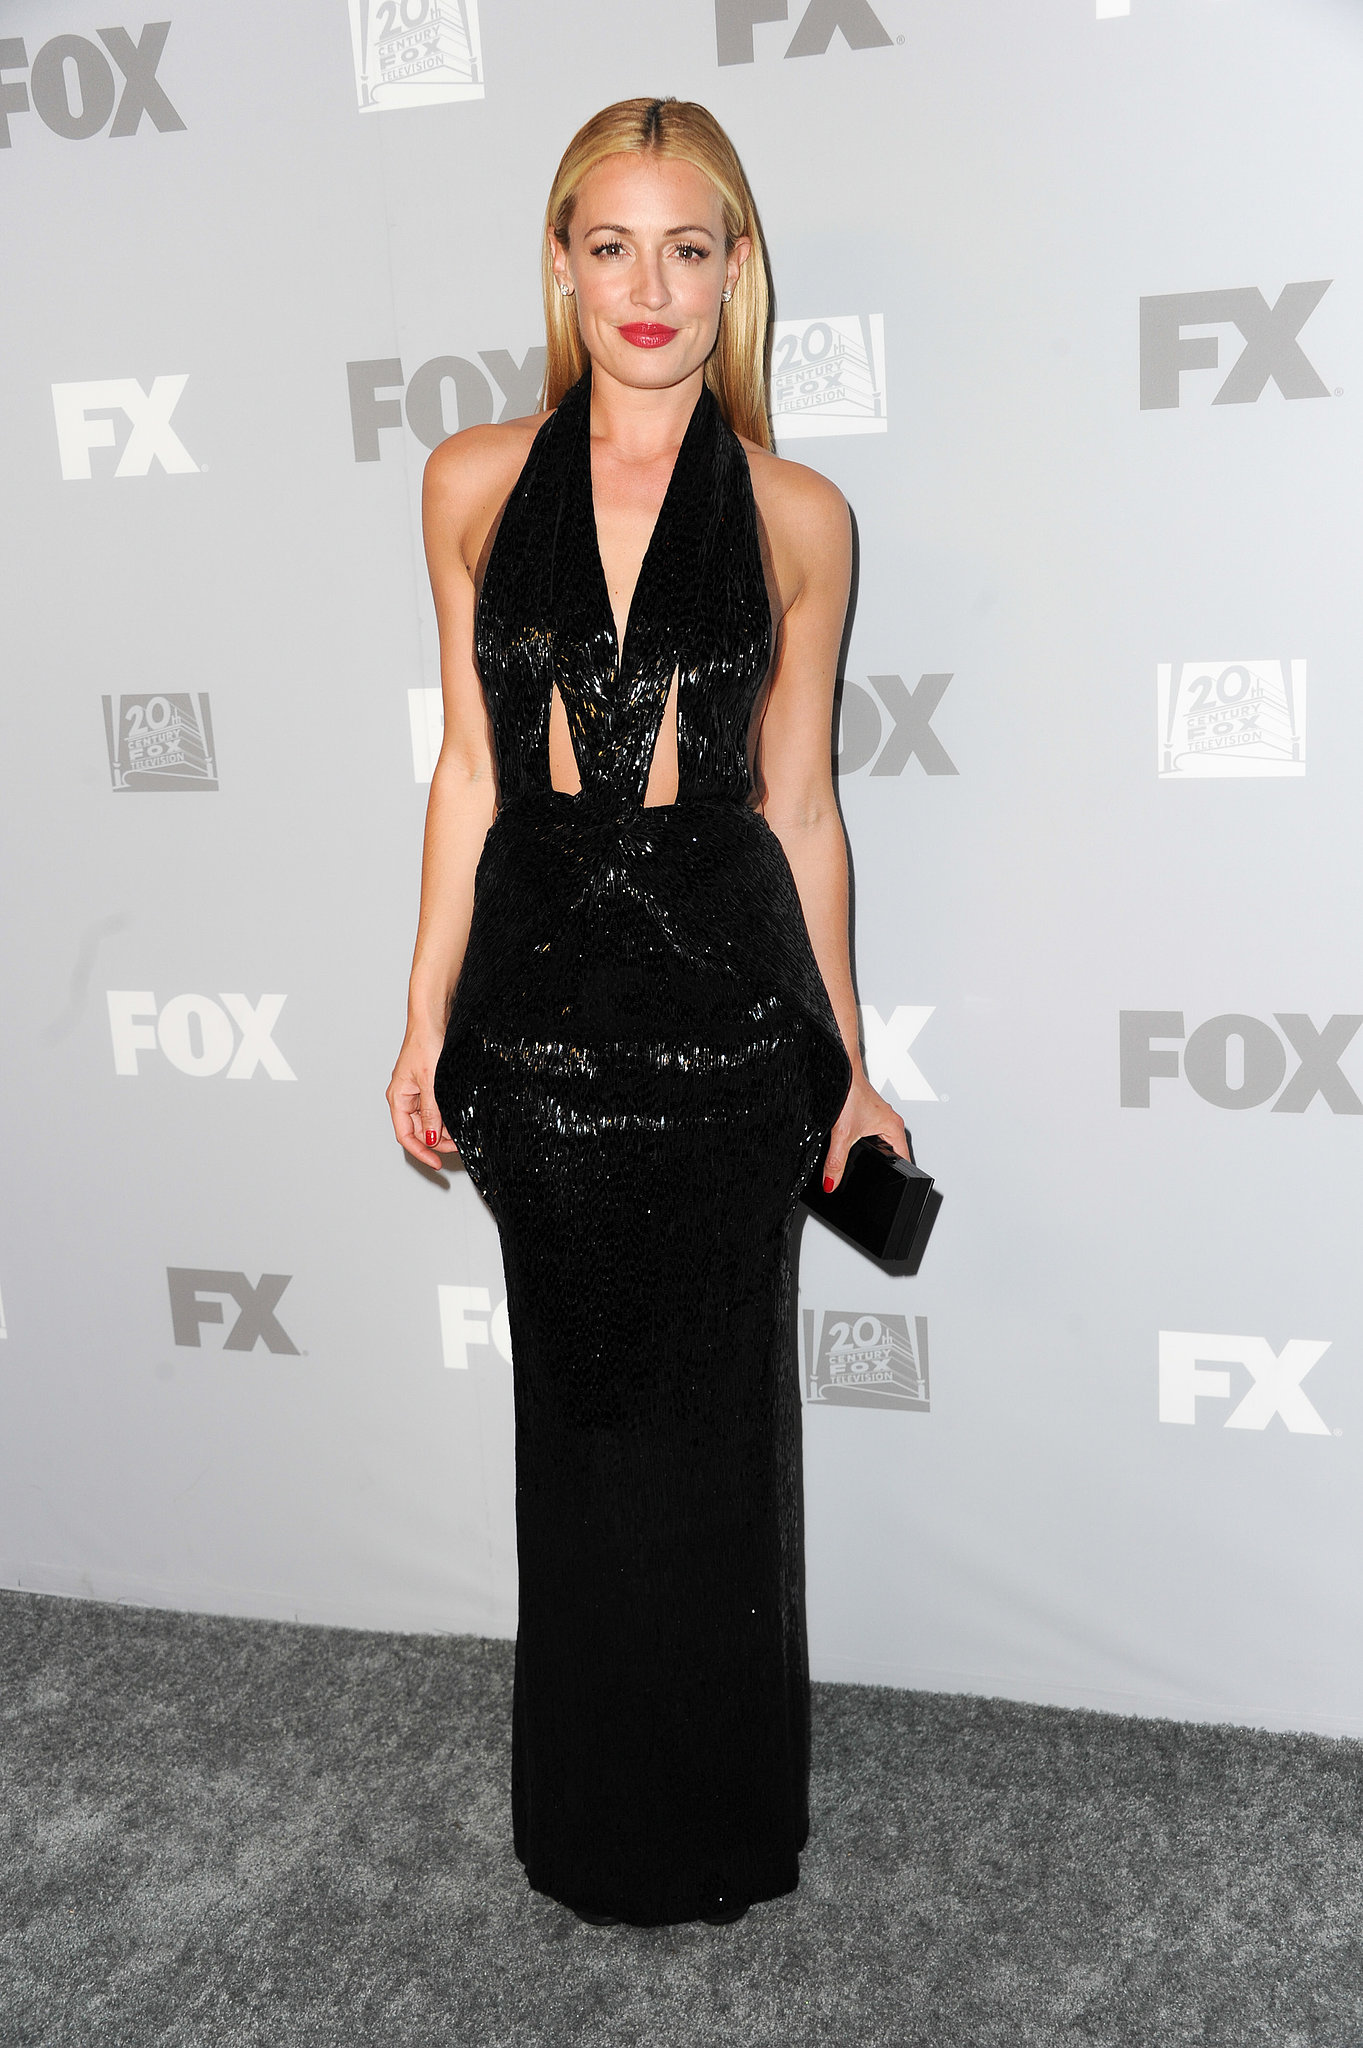 Between the sequins and the cutouts, Cat Deeley's black halter gown at the Fox afterparty was simply dazzling. She finished with Jimmy Choo sandals.